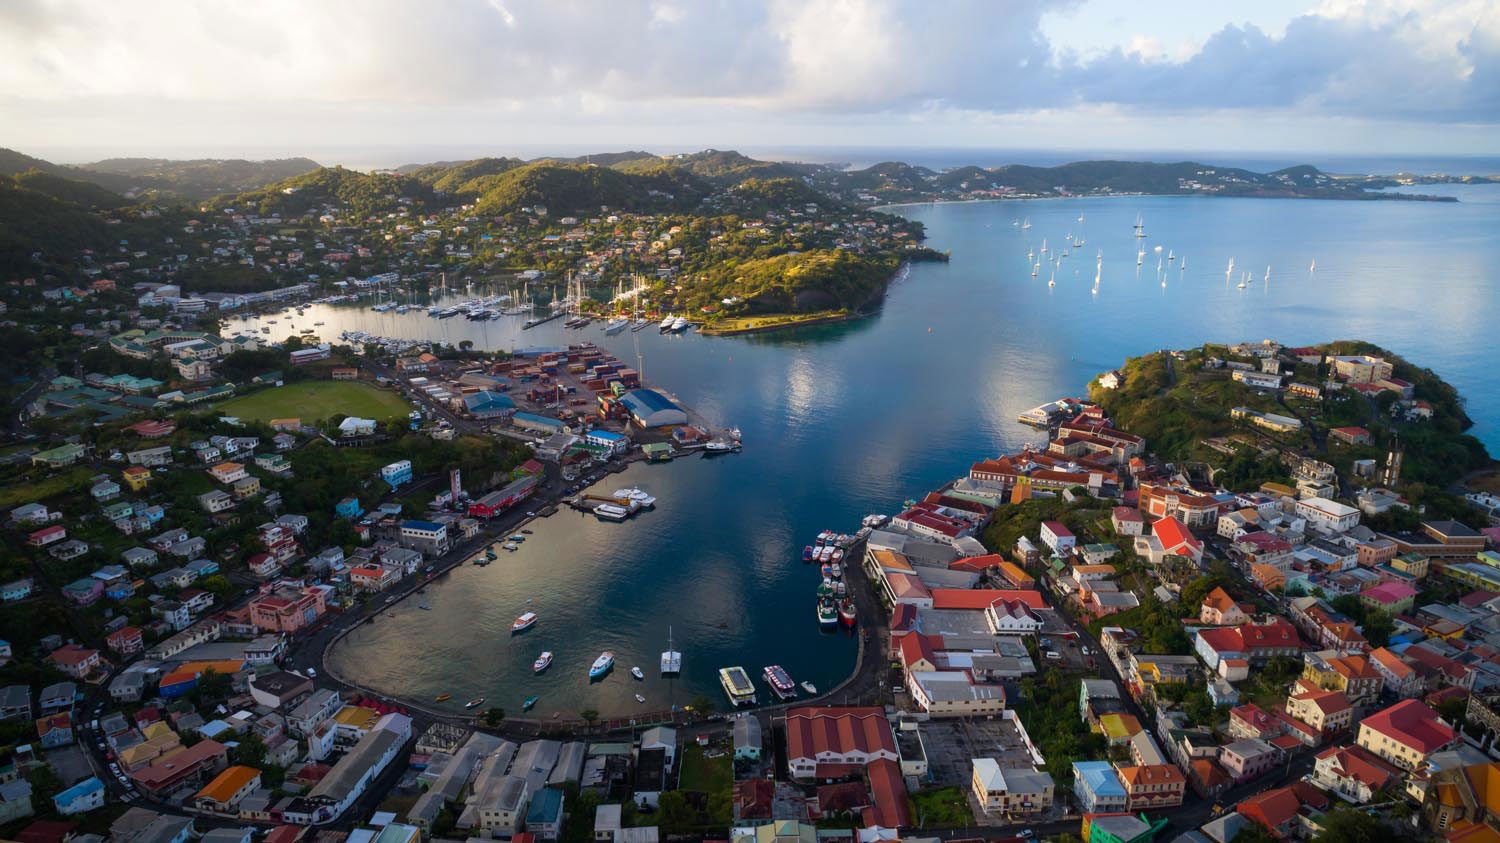 St George's, one of the Caribbean's most picturesque capitals. Photograph courtesy Pure Grenada Tourism Authority